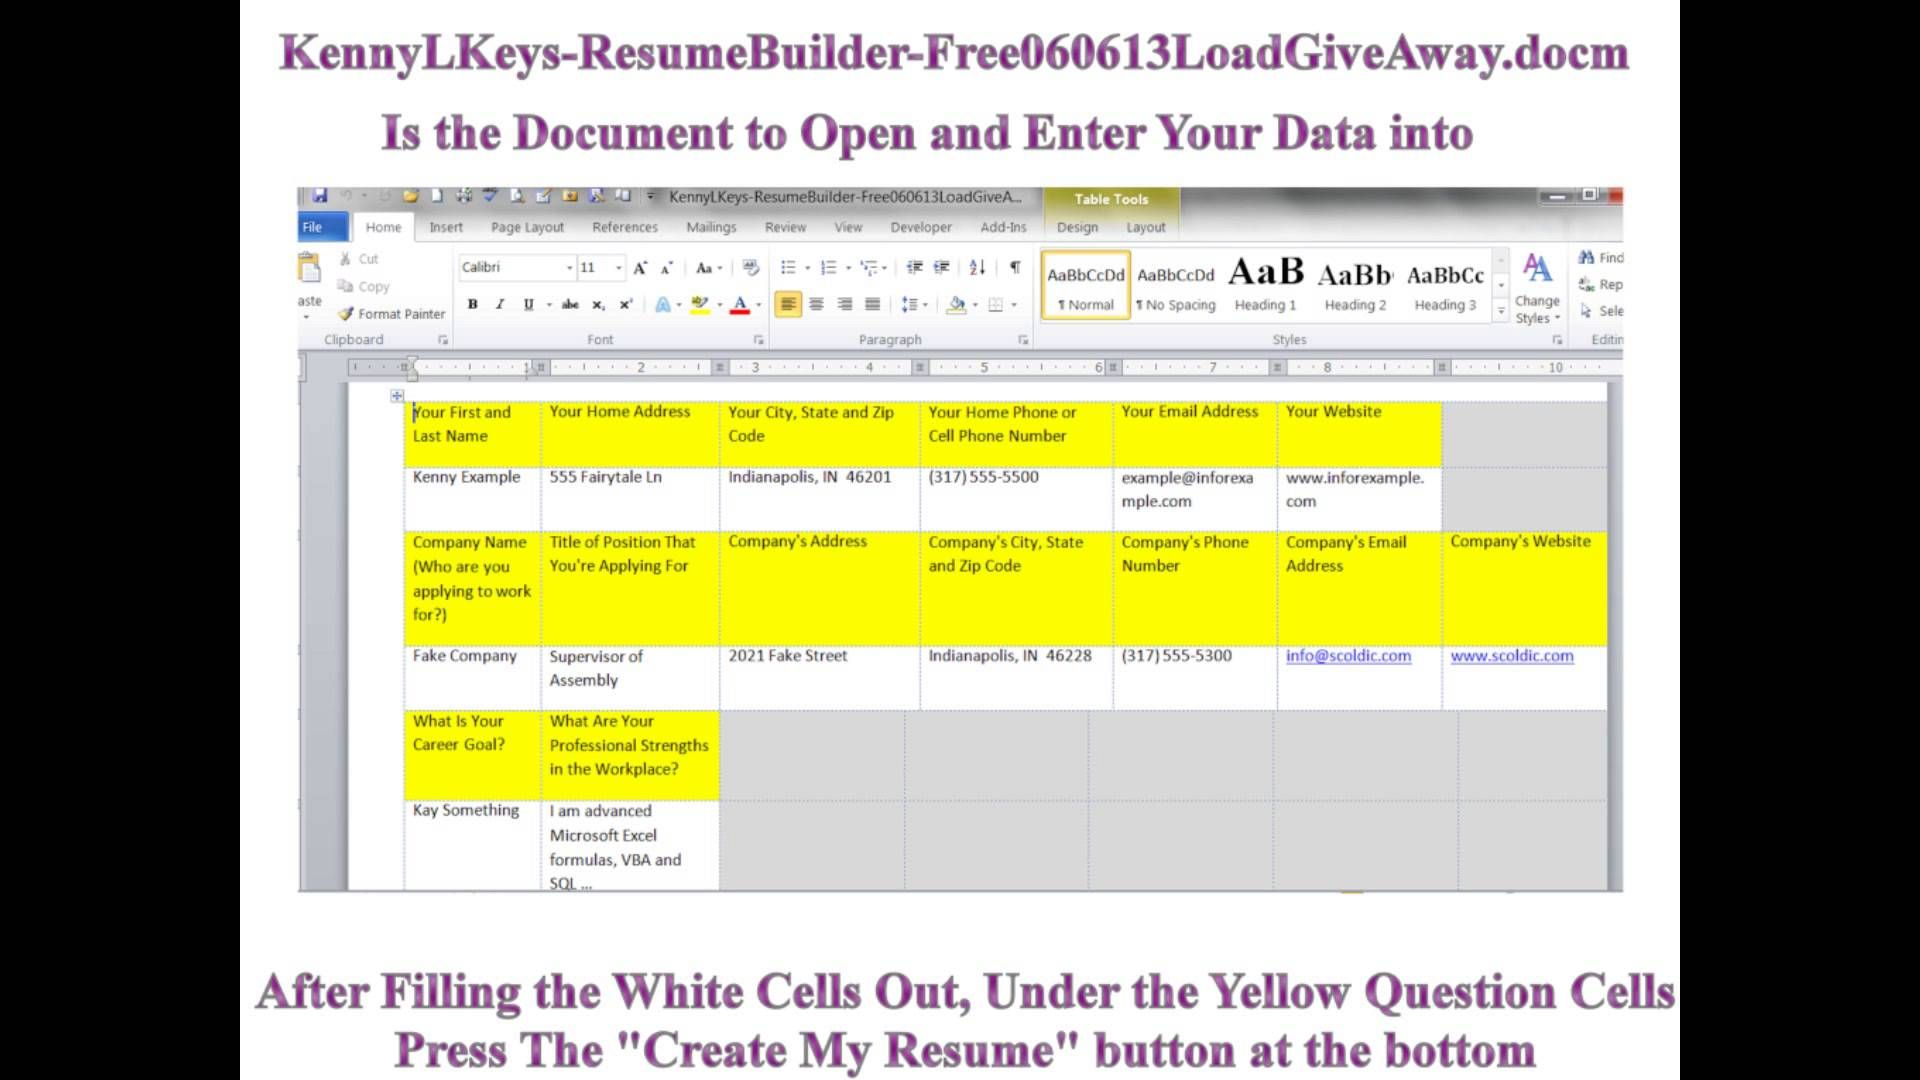 Microsoft Word Vba Creates Resume And Cover Letter Generator Kenny